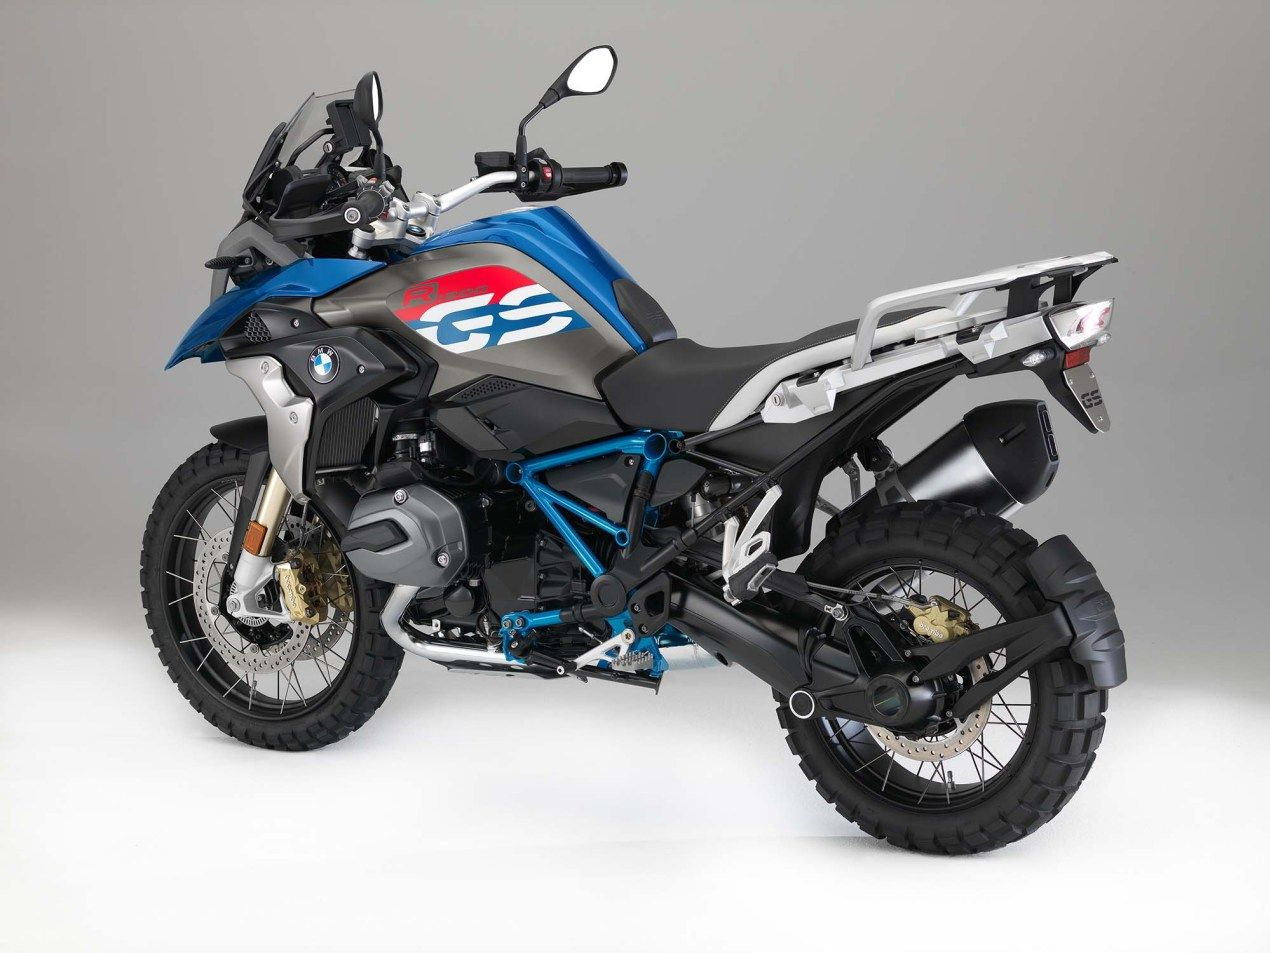 2017 Bmw R1200gs Gets Upgrades And A Little Rallye In 2020 Bike Bmw 2017 Bmw Adventure Bike Motorcycles